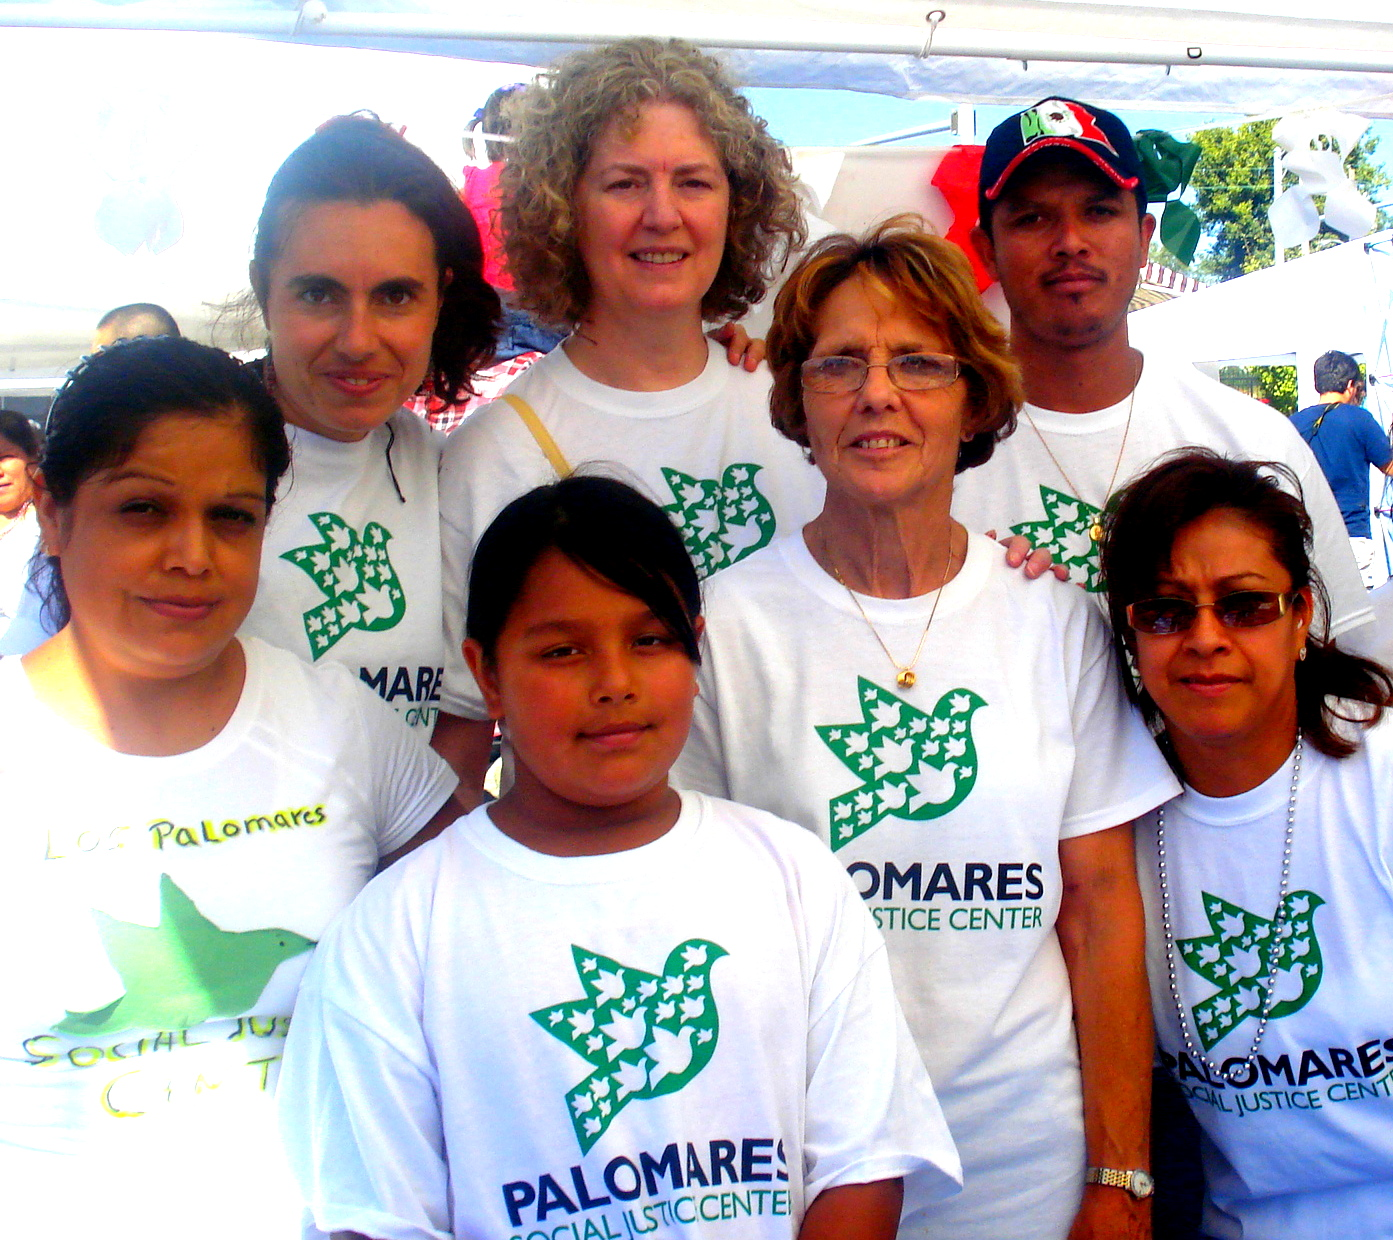 Meet the Palomares team  here